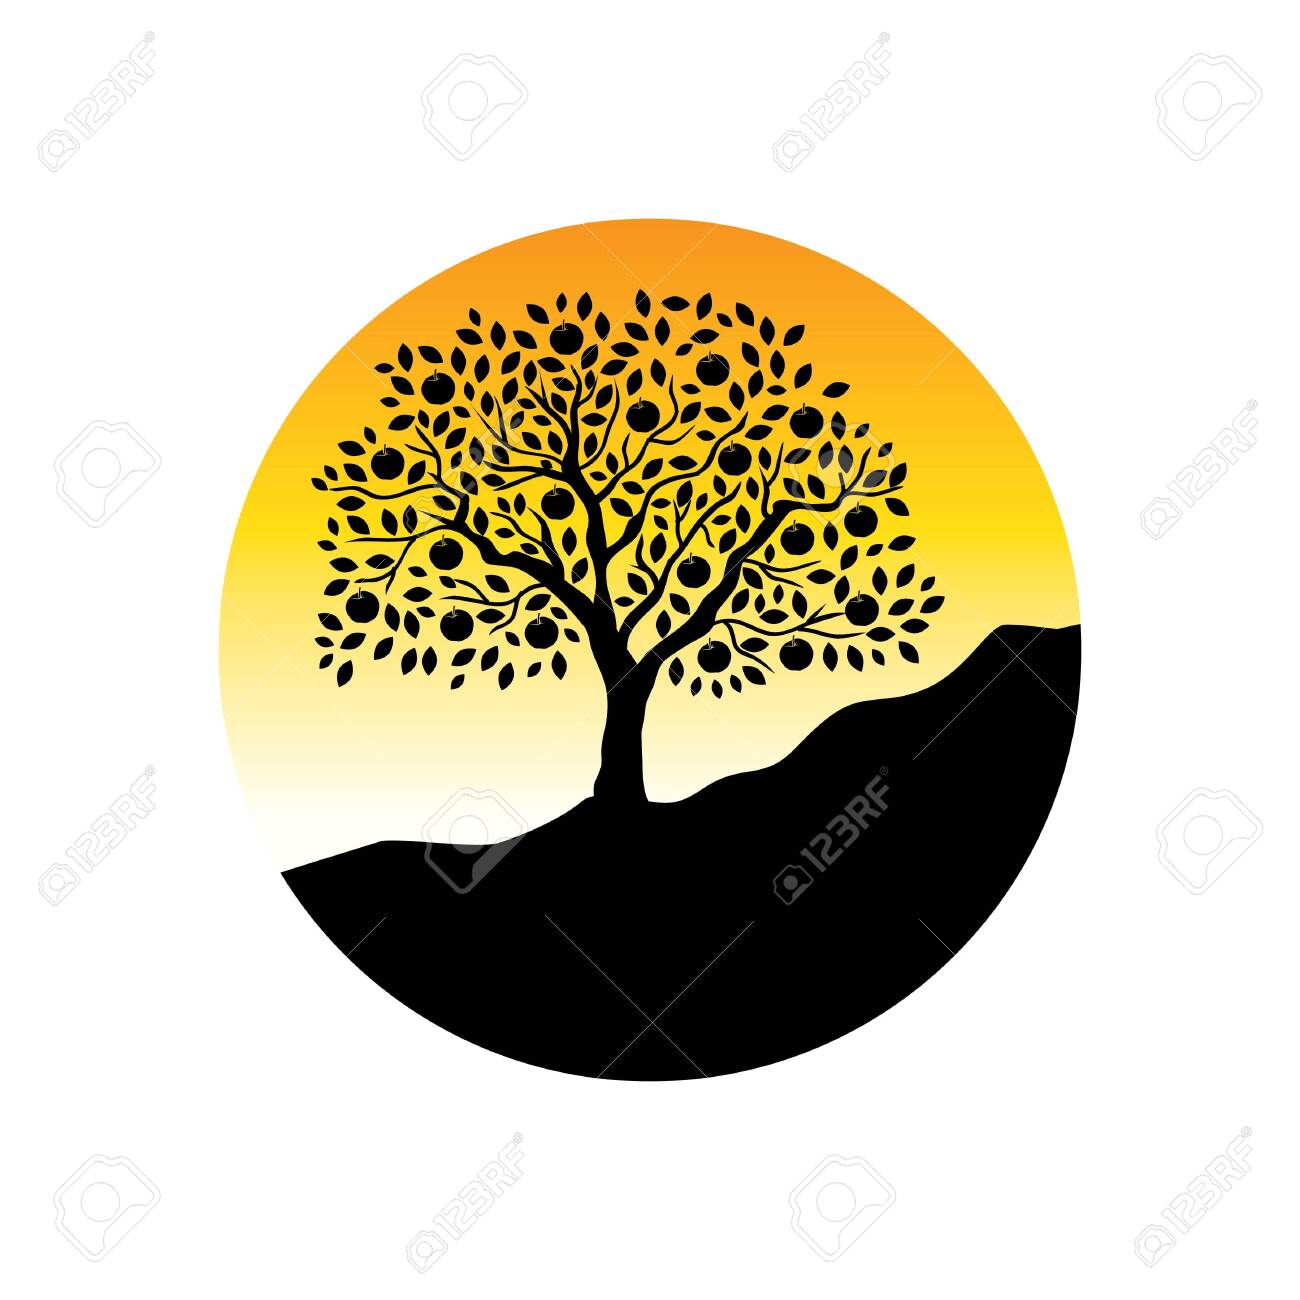 Apple Tree Logo Icon Royalty Free Cliparts Vectors And Stock Illustration Image 136277760